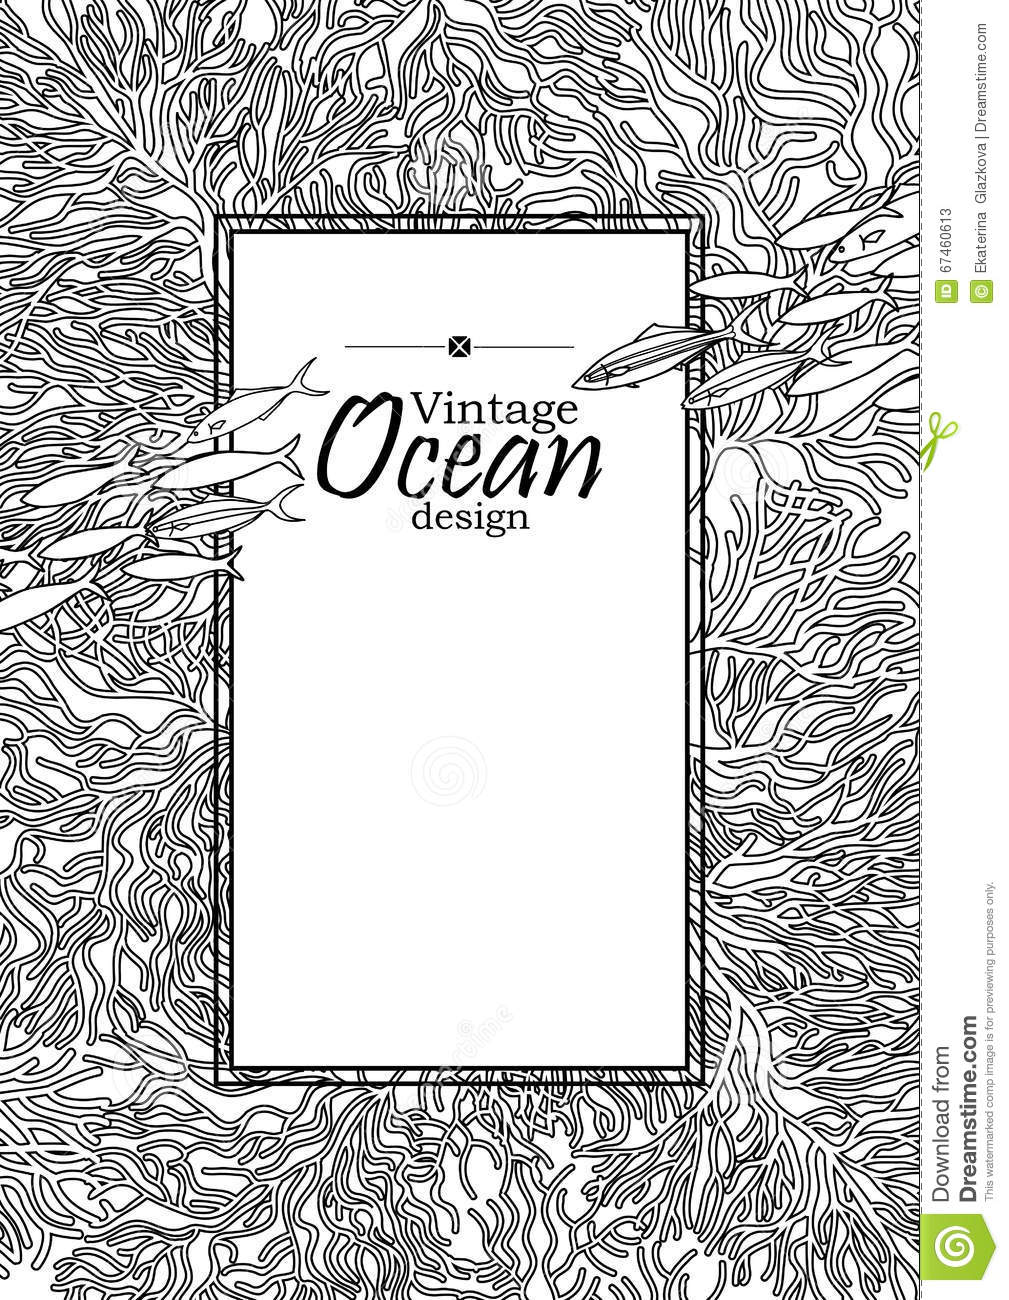 Line Art Card Design : Ocean line art design stock vector image